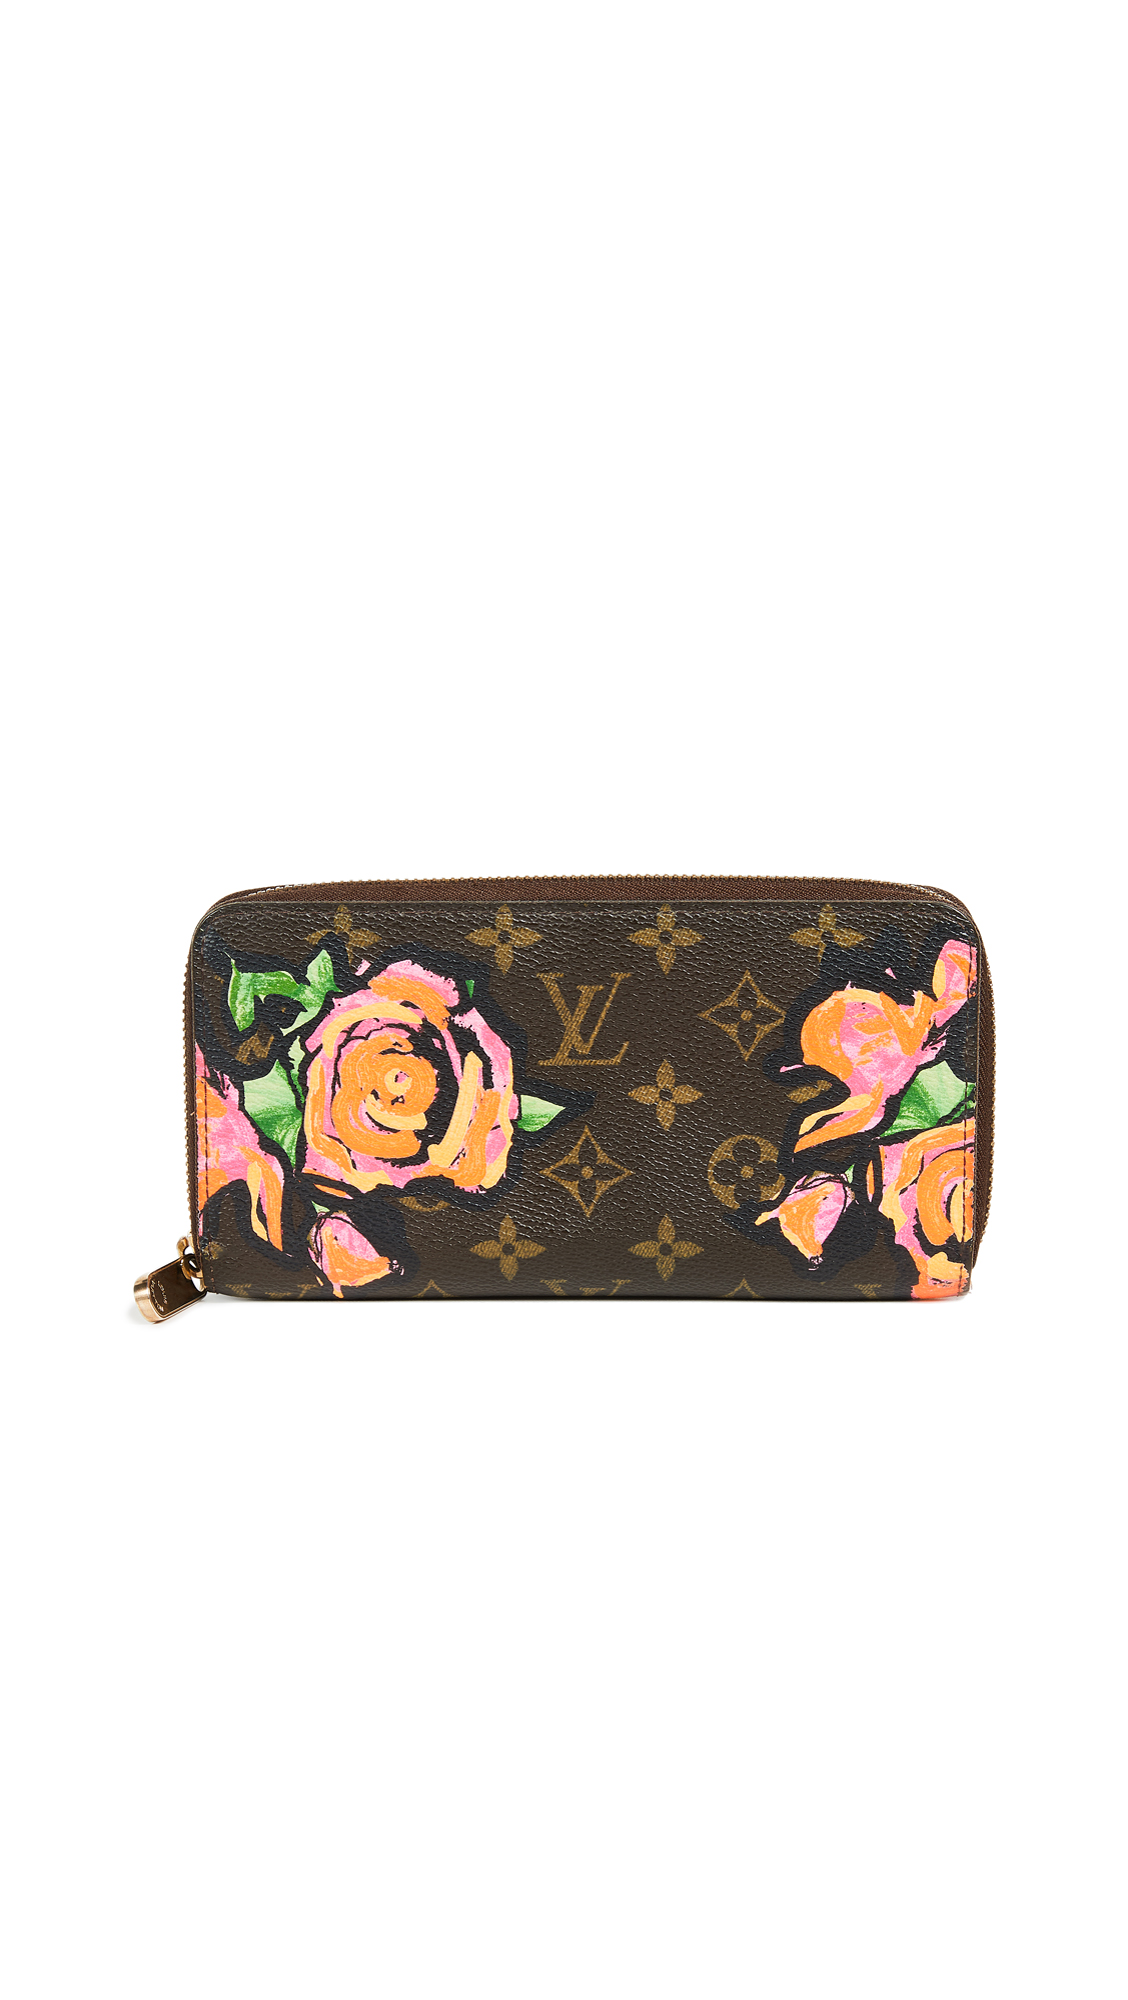 LOUIS VUITTON ROSES ZIPPY WALLET